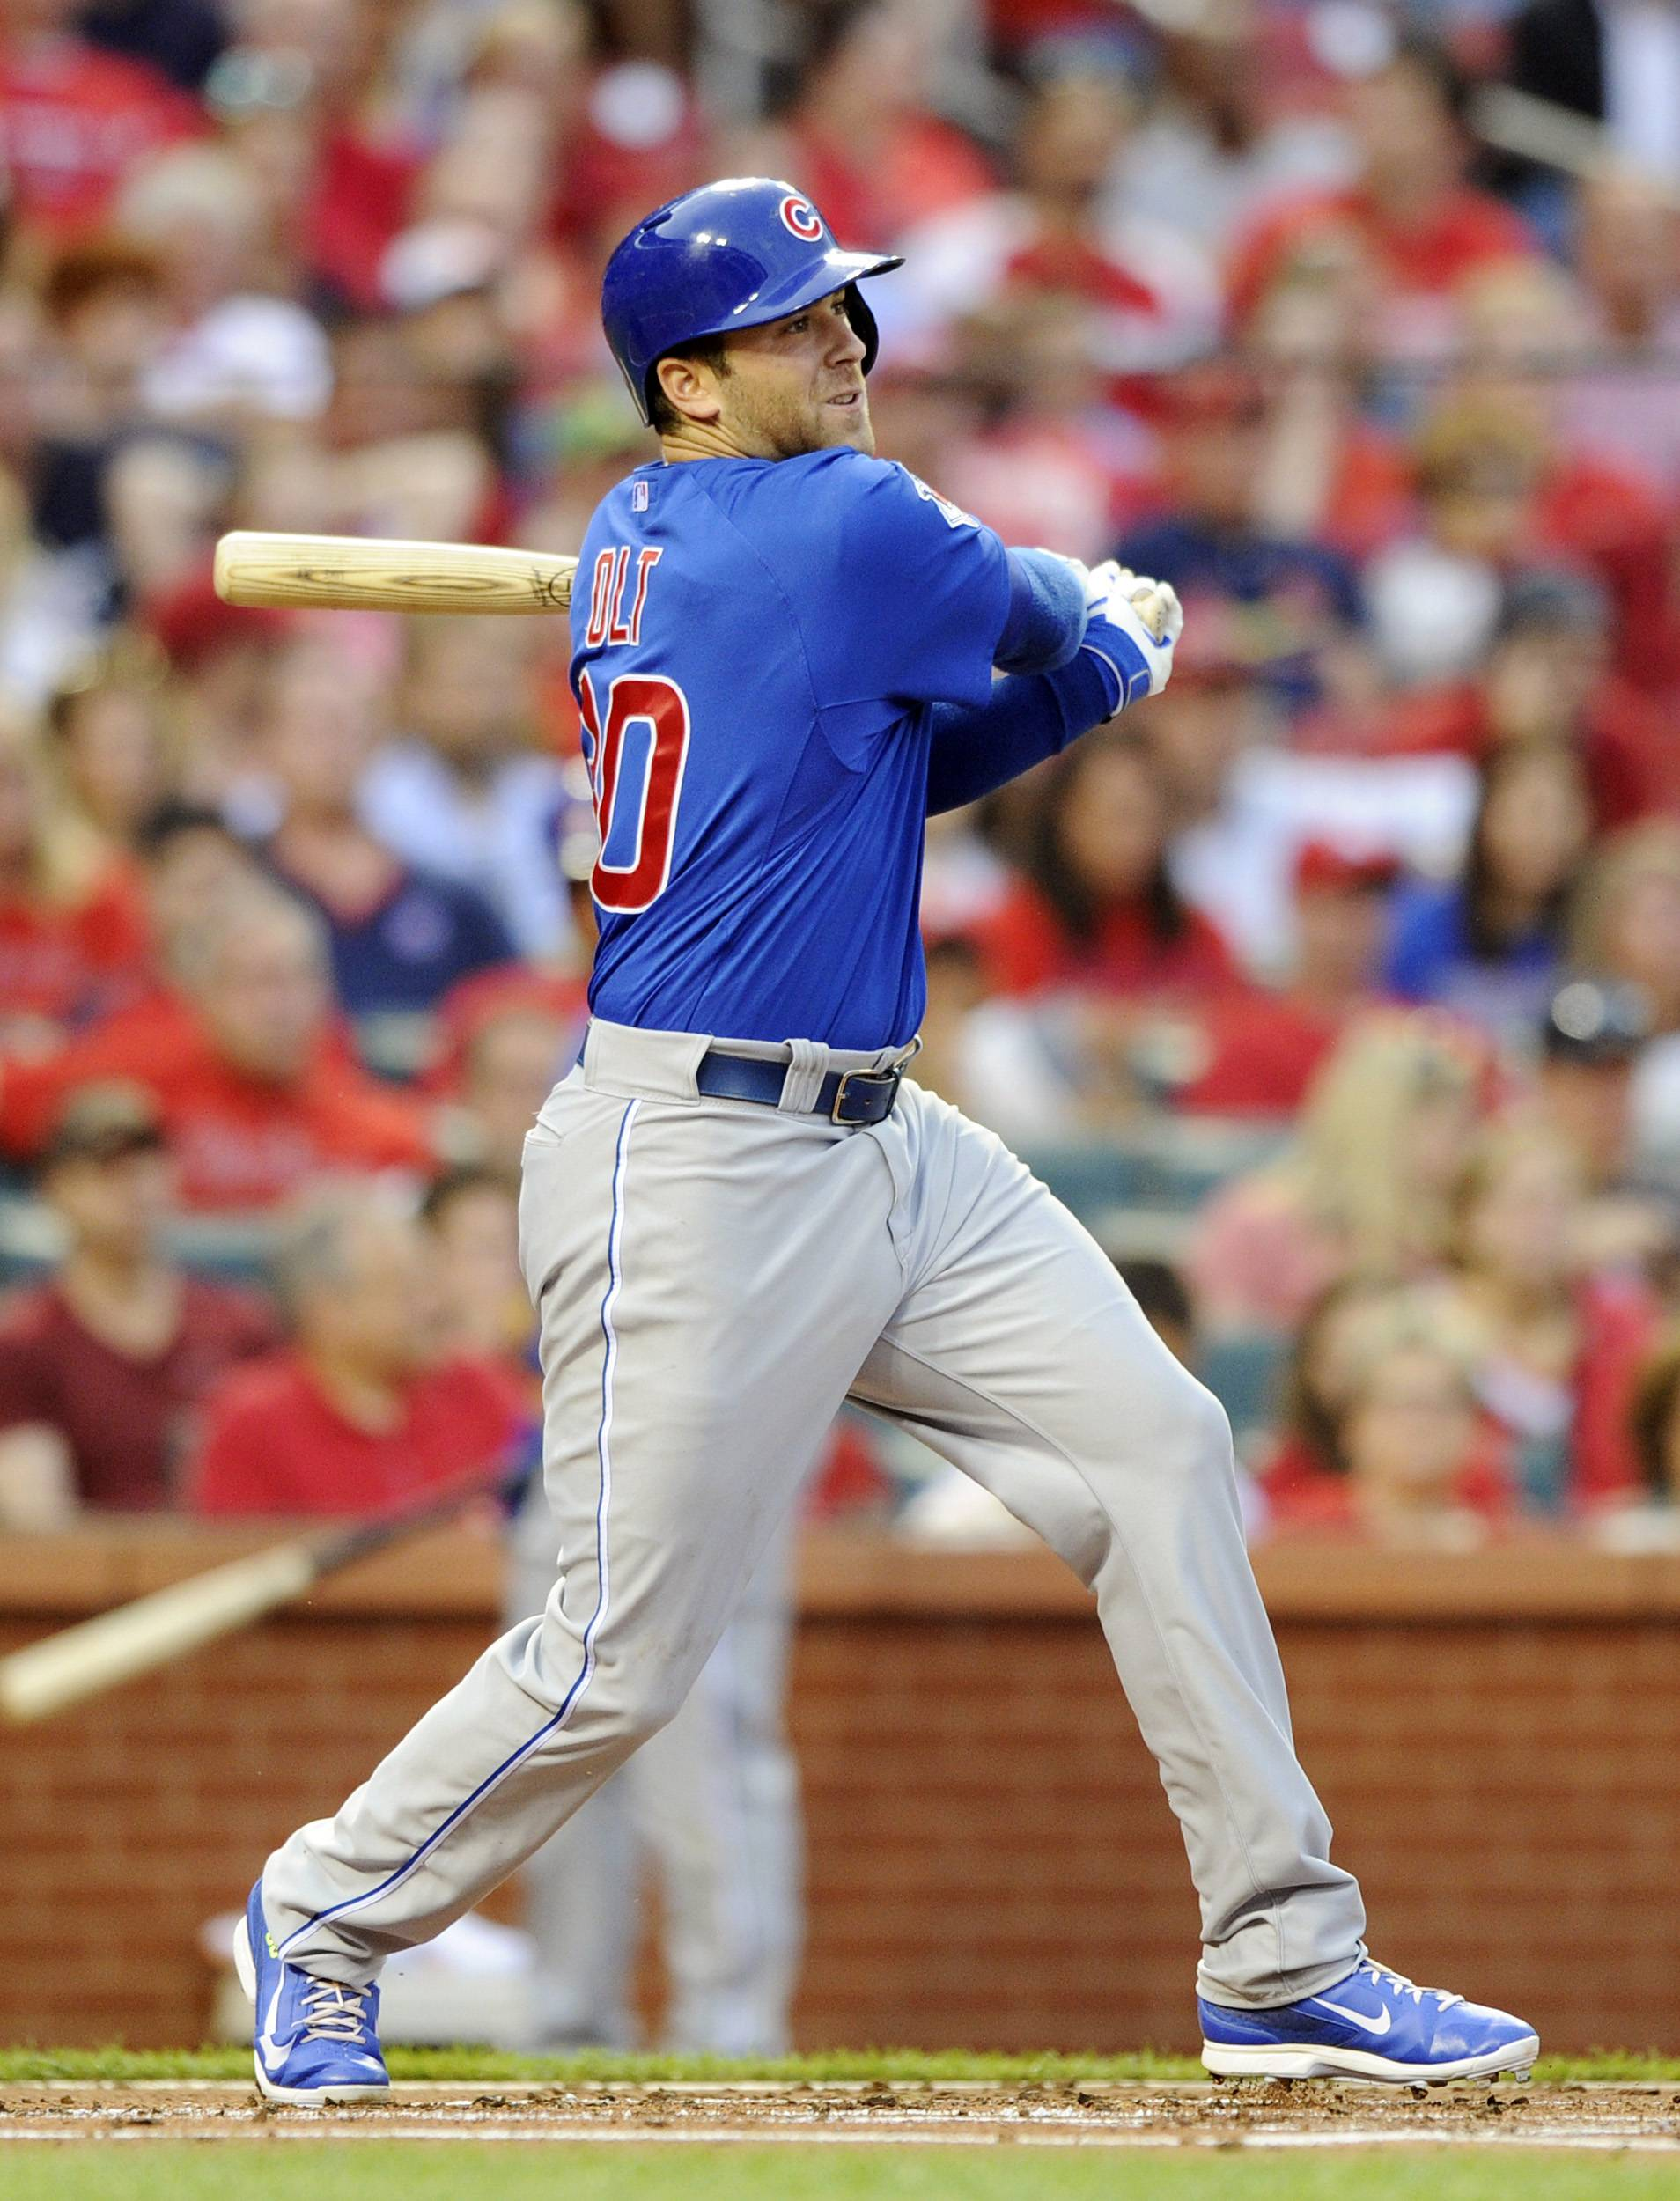 Mike Olt leads the Cubs with 8 home runs this season, but he was not in the starting lineup Tuesday against the Cardinals at St. Louis.